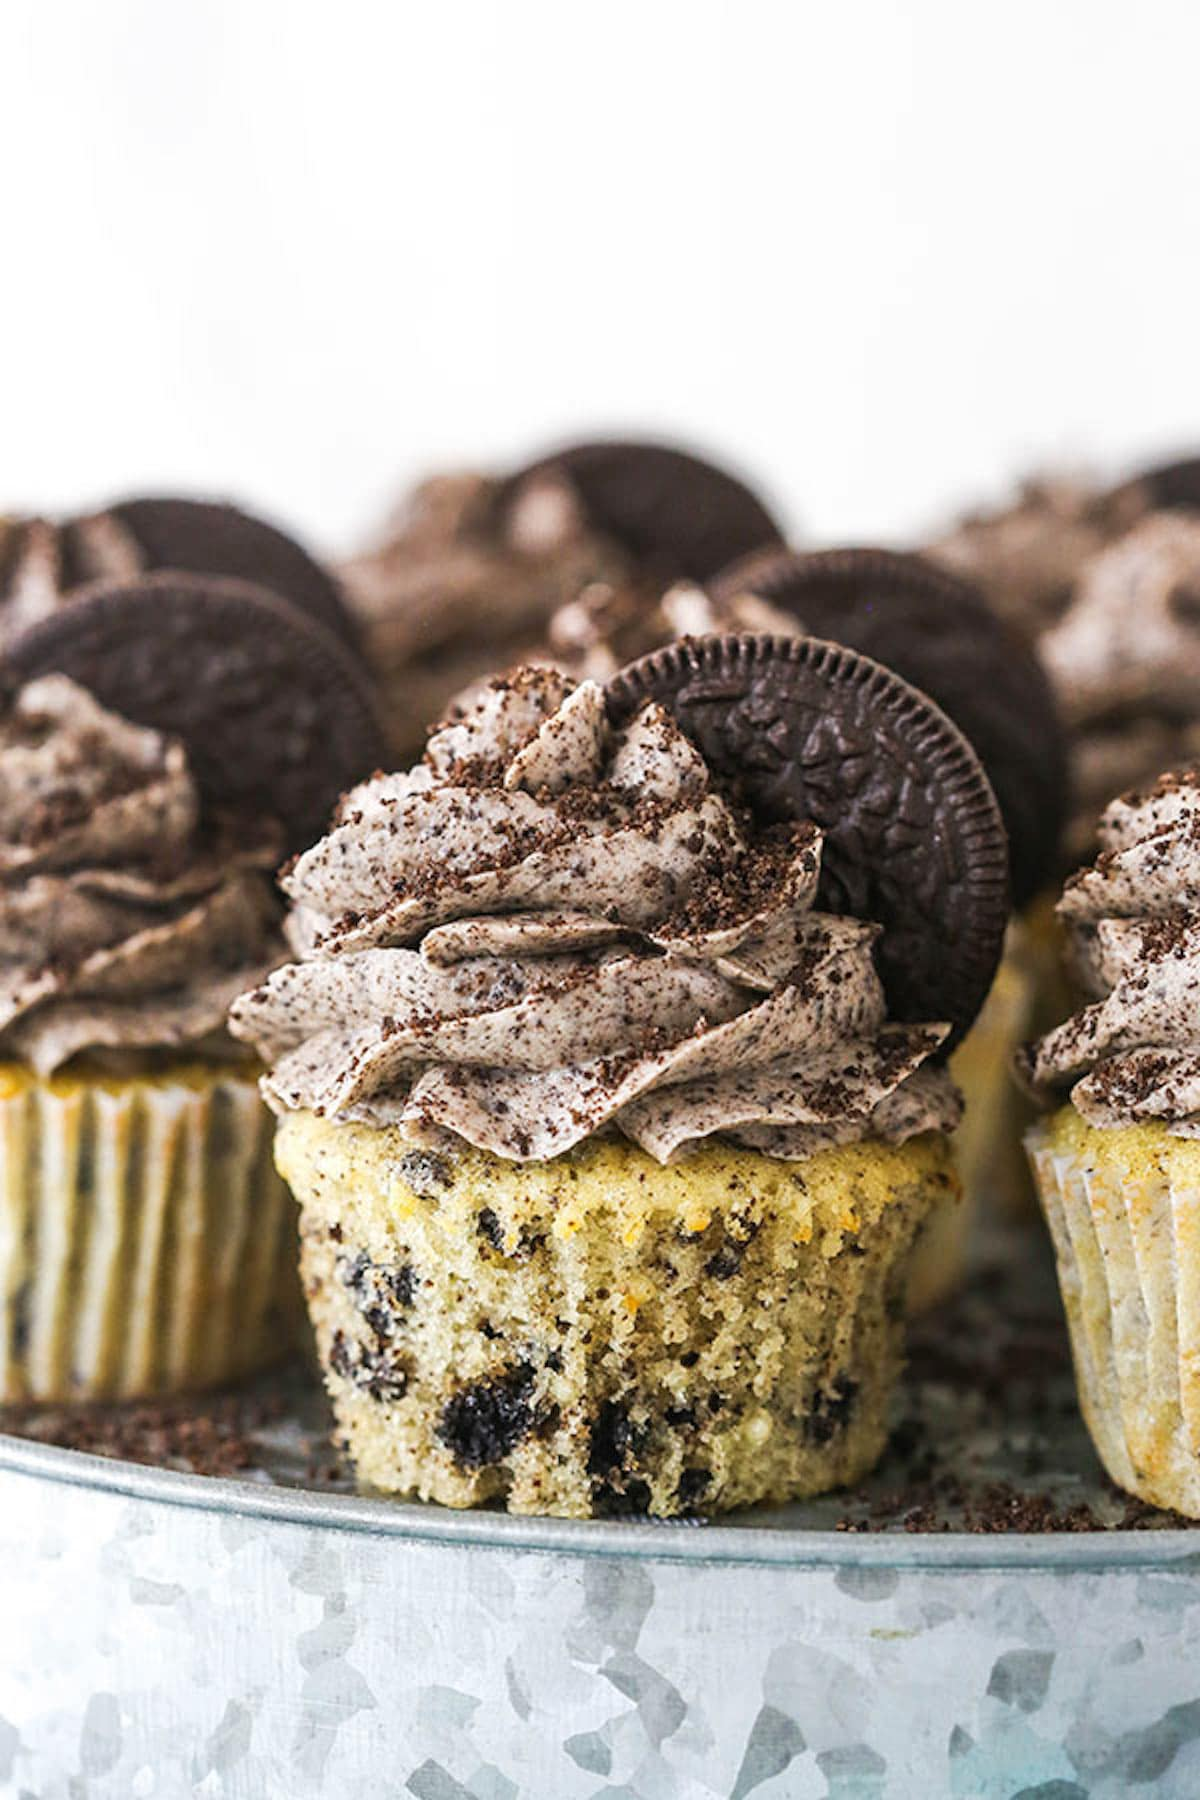 A Plate of Oreo Cupcakes Garnished with Half Oreos